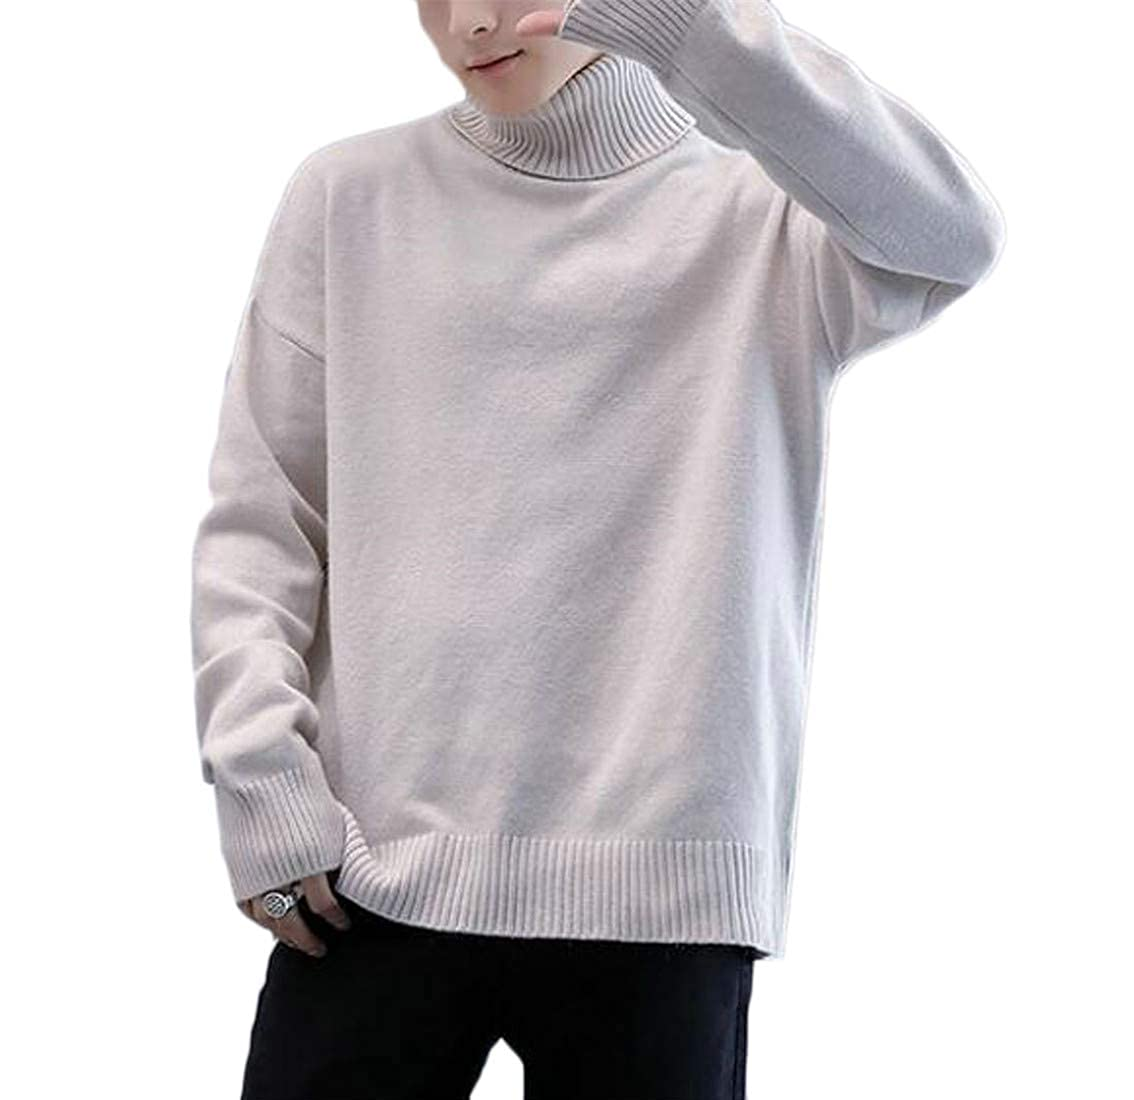 Macondoo Mens Knitted Solid Stylish Jumper Turtle Neck Pullover Sweaters